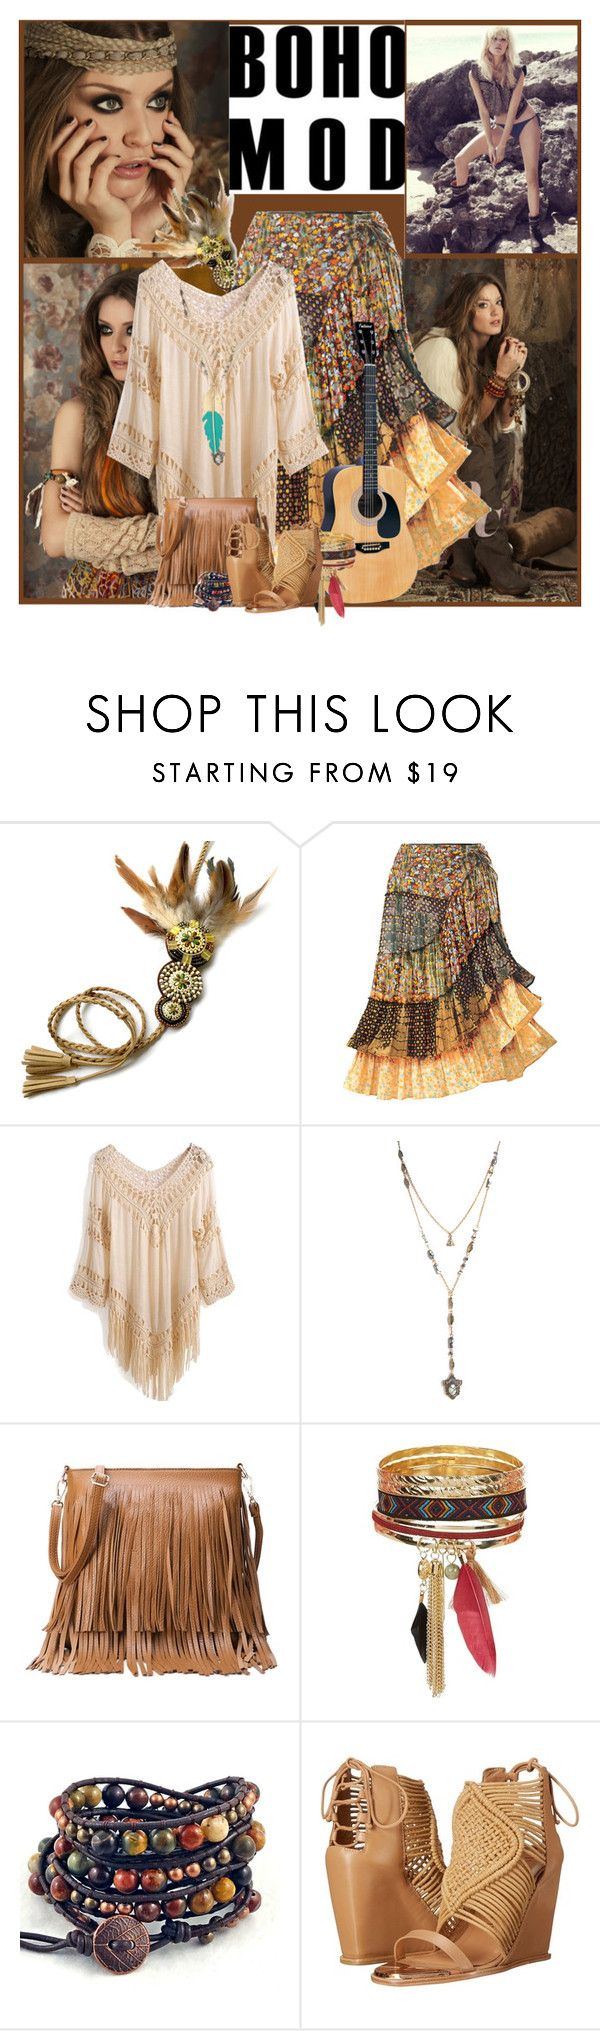 """""""Bo Ho Chic"""" by flowerchild805 ❤ liked on Polyvore featuring Behance, Ivy Kirzhner and Accessorize"""